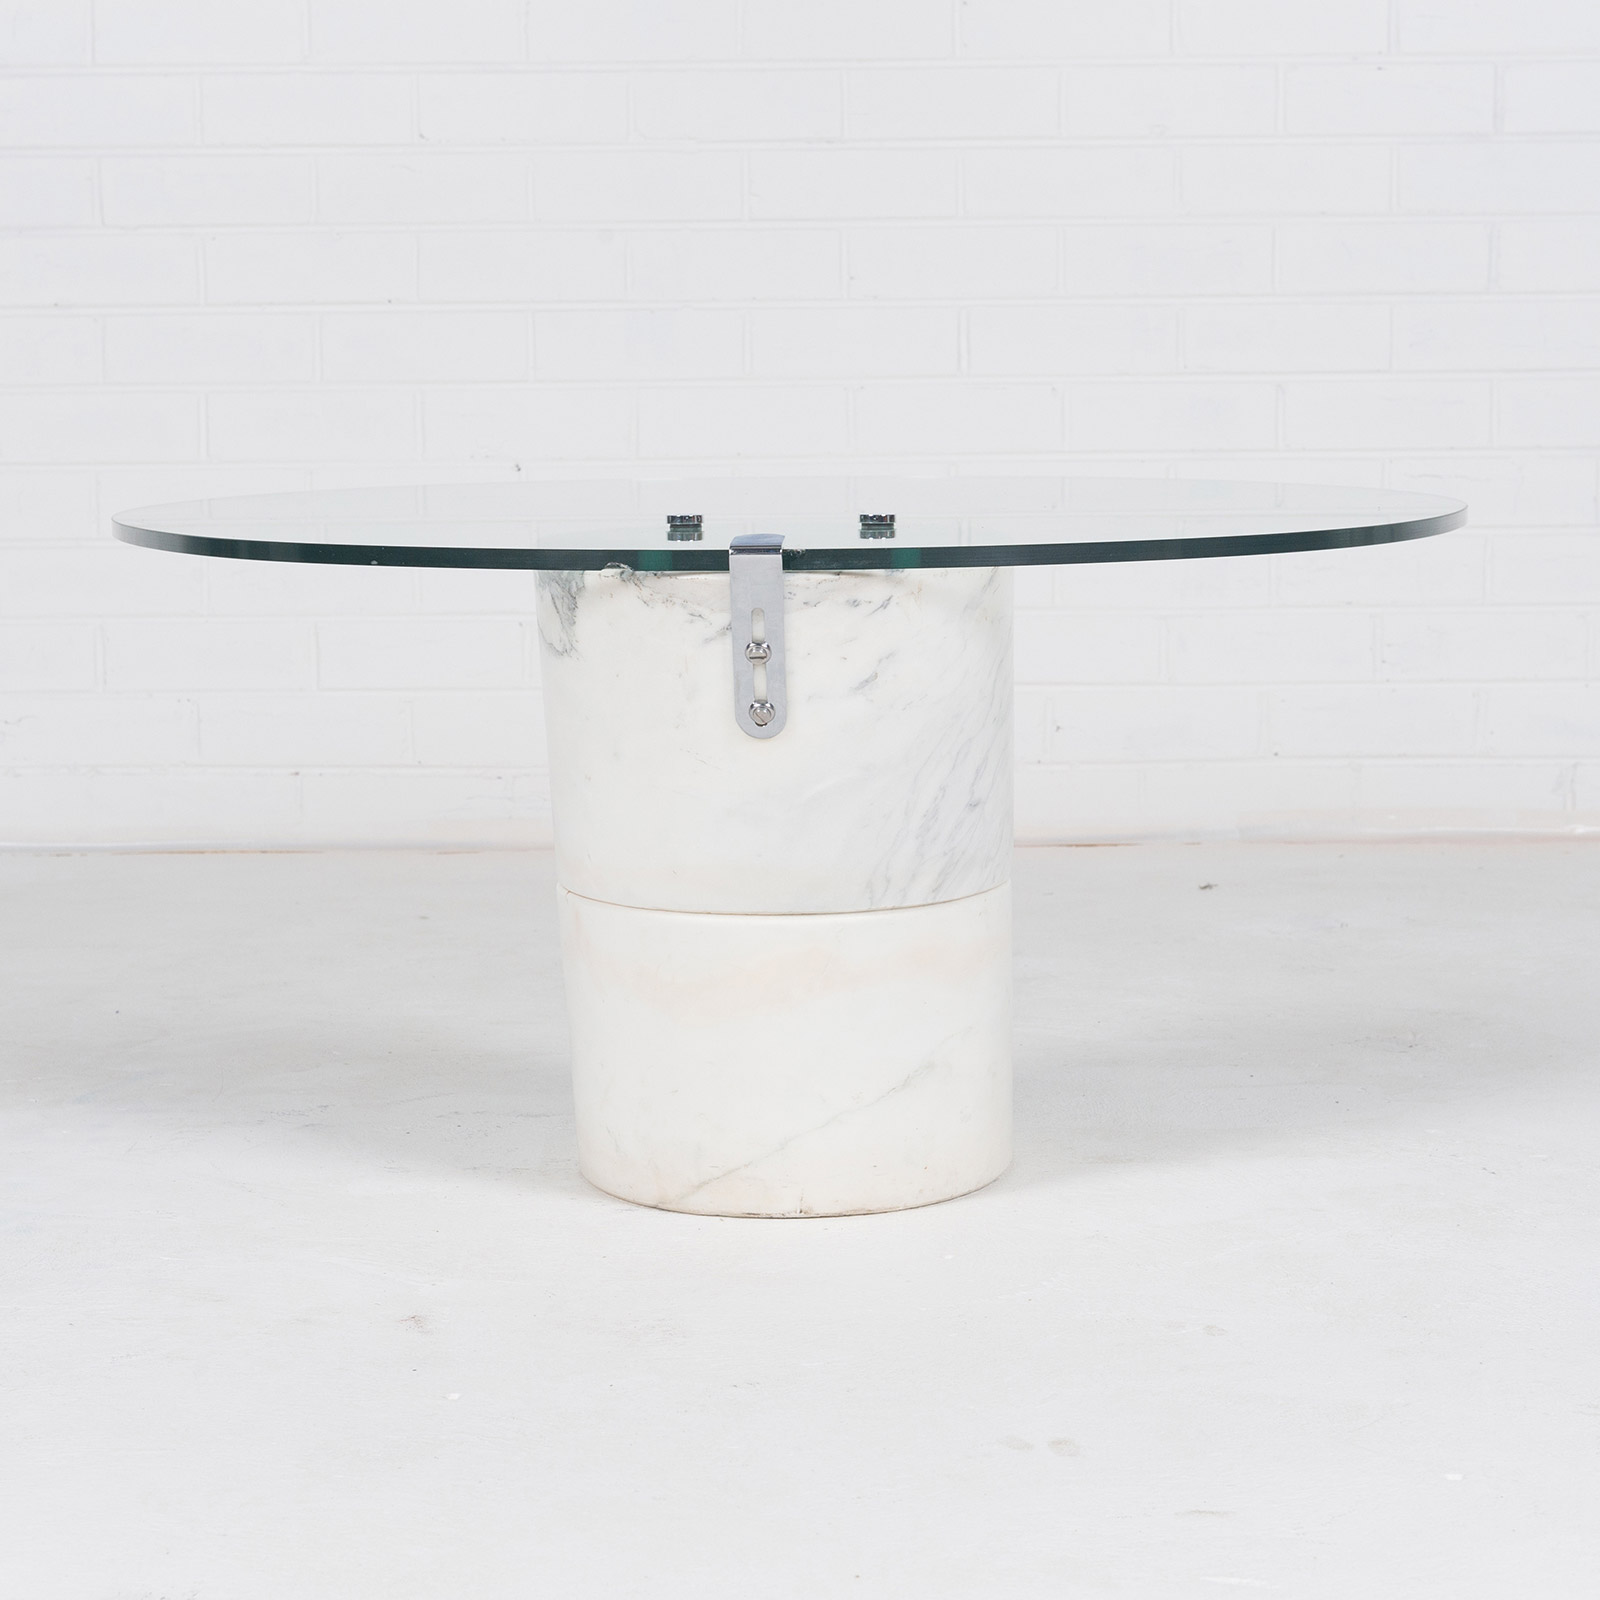 Coffee Table In The Style Of K1000 By Roland Schmitt With Split Marble Base 1974 Switzerland 02